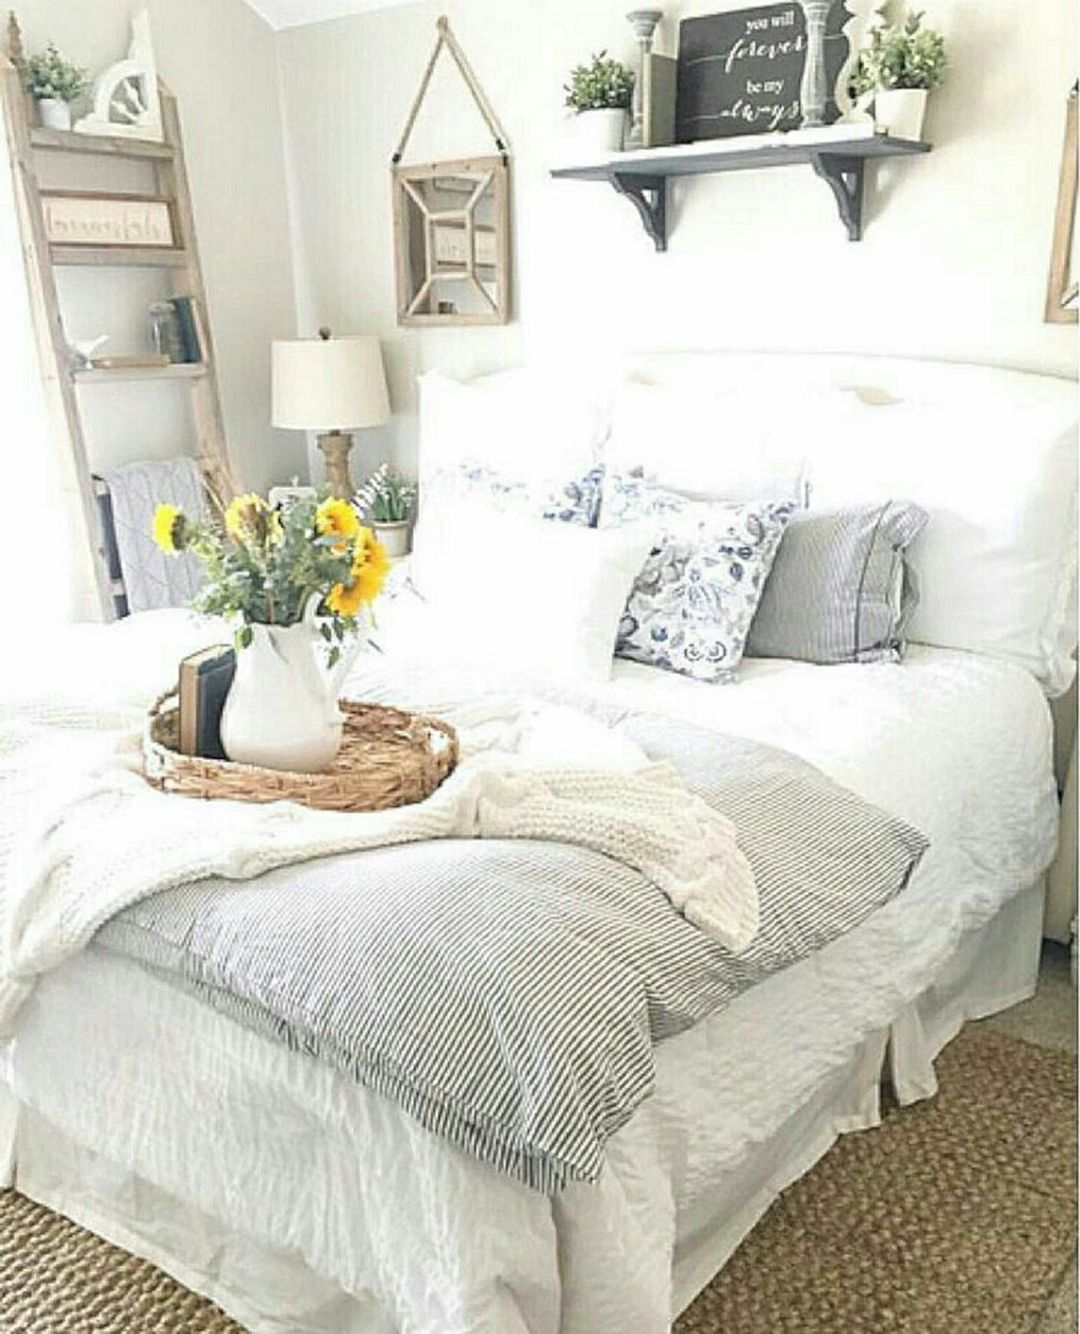 Cool 57 Cozy Farmhouse Guest Bedroom Design Ideas To Make Your